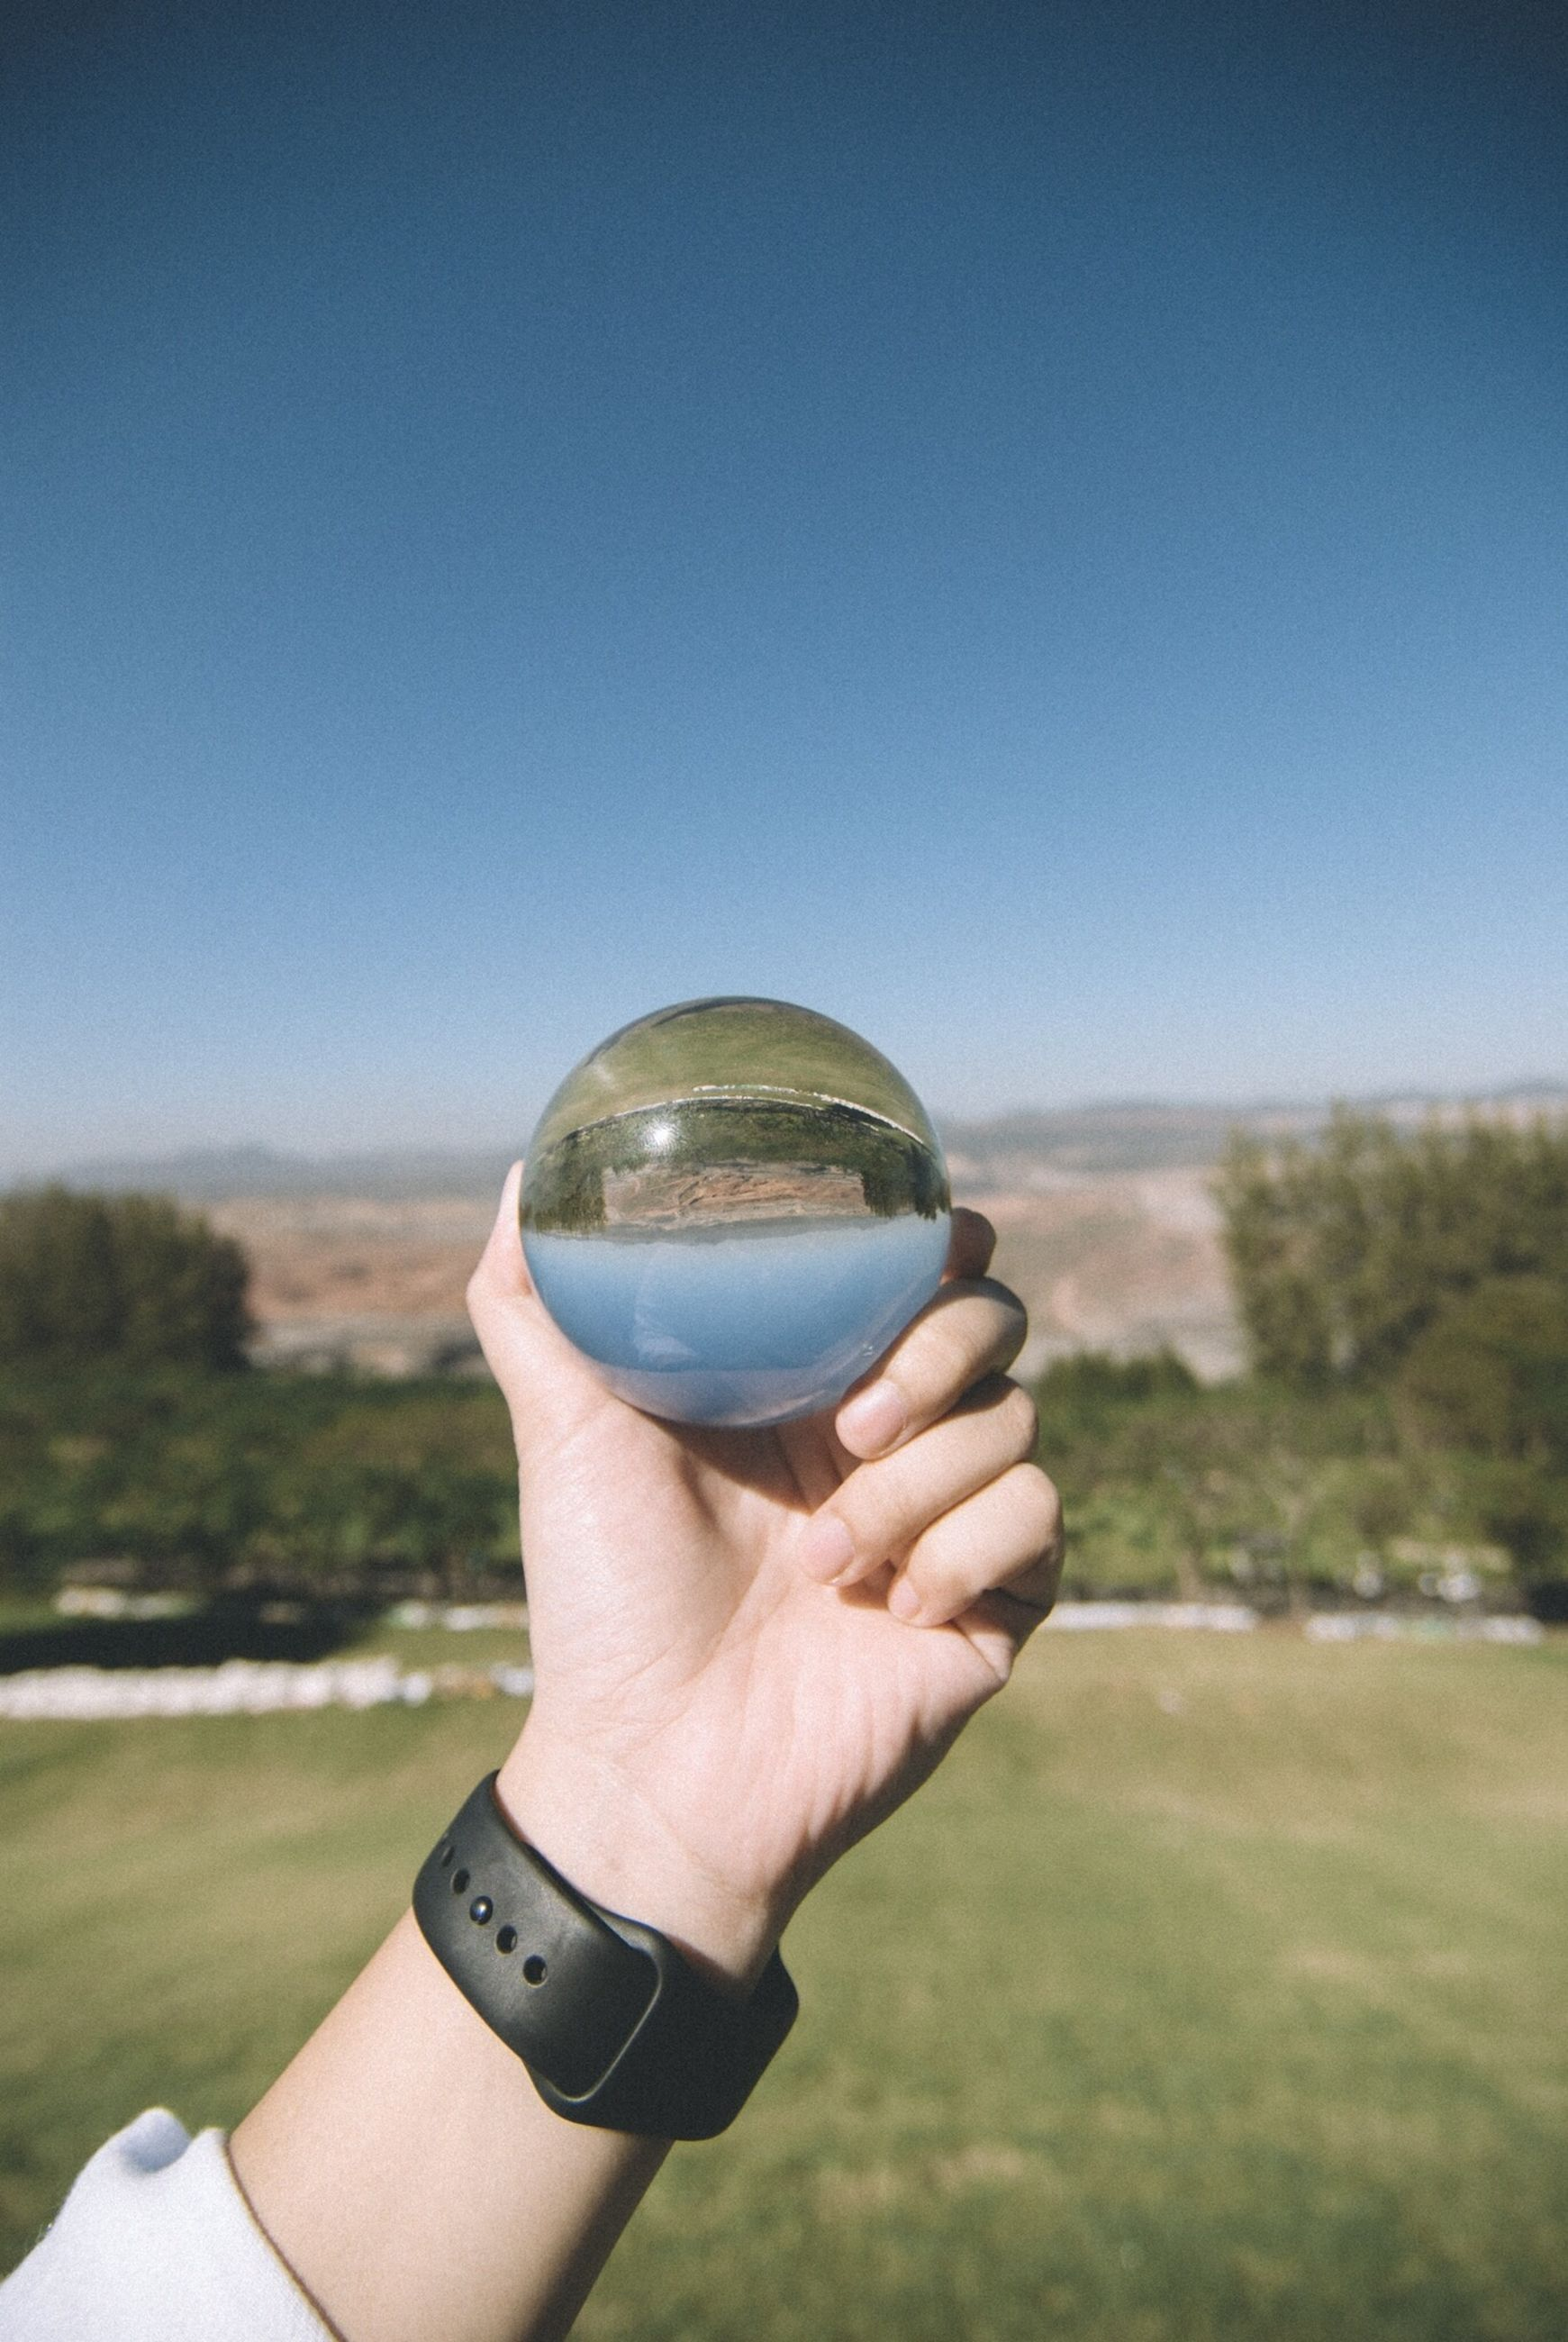 human hand, hand, human body part, holding, one person, sky, sphere, day, nature, clear sky, crystal ball, real people, blue, focus on foreground, personal perspective, transparent, glass - material, body part, landscape, outdoors, finger